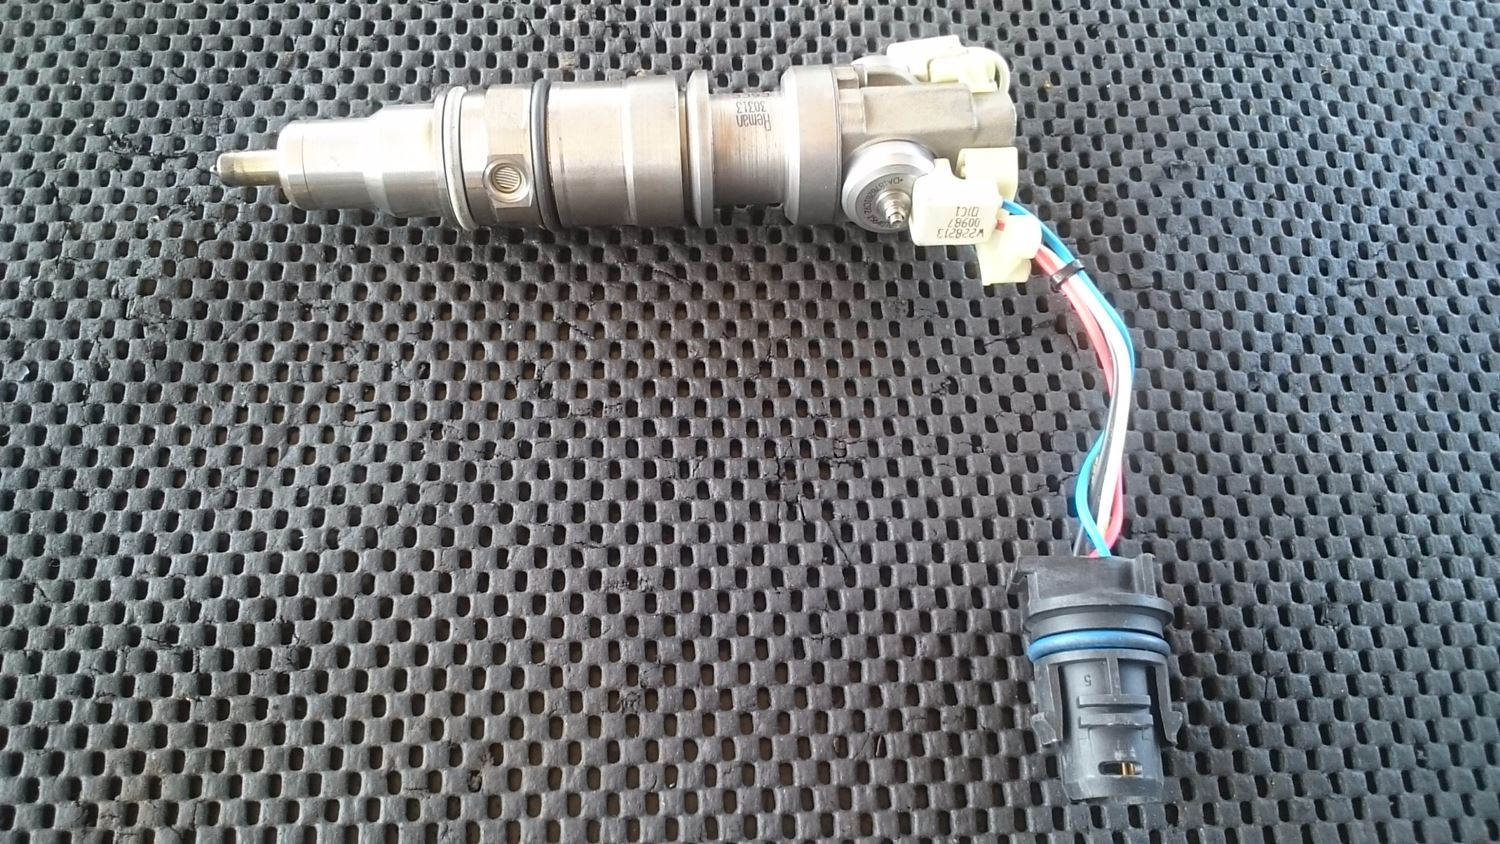 medium resolution of fuel injection parts new and used parts american truck chrome engine wiring harness vt365 injector wiring harness